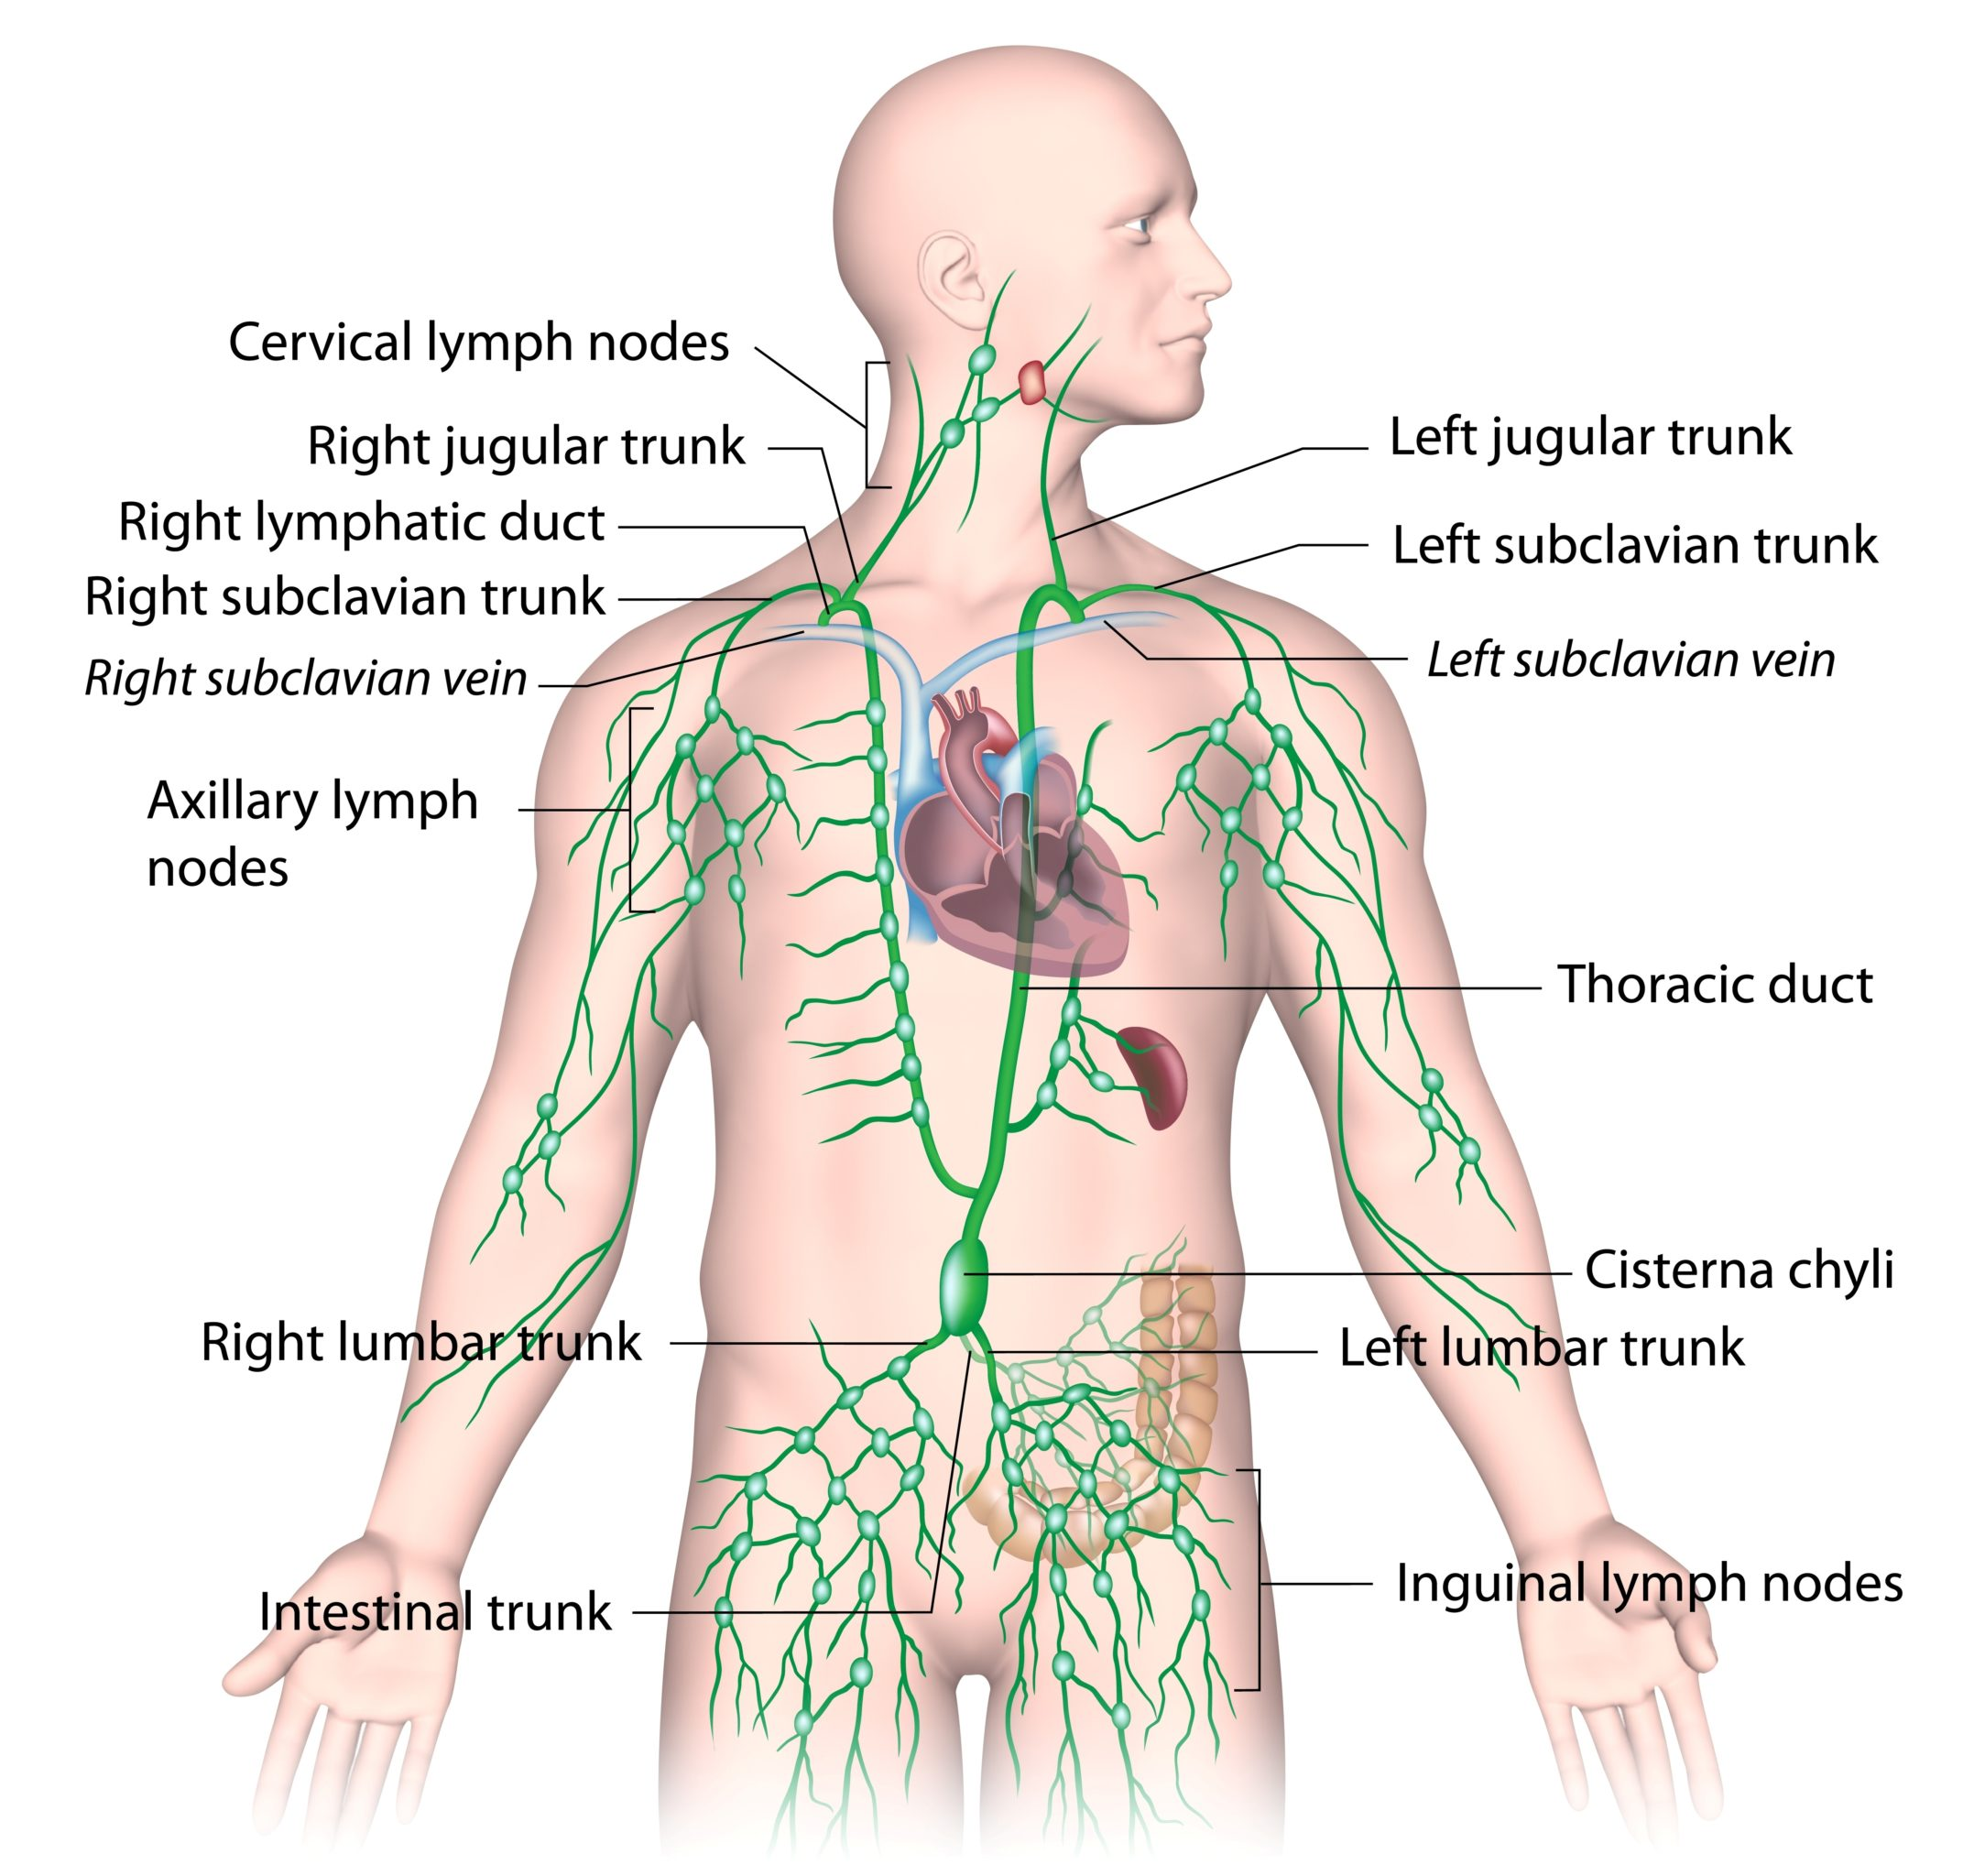 Lymphatic Drainage From Upper Body Labeled